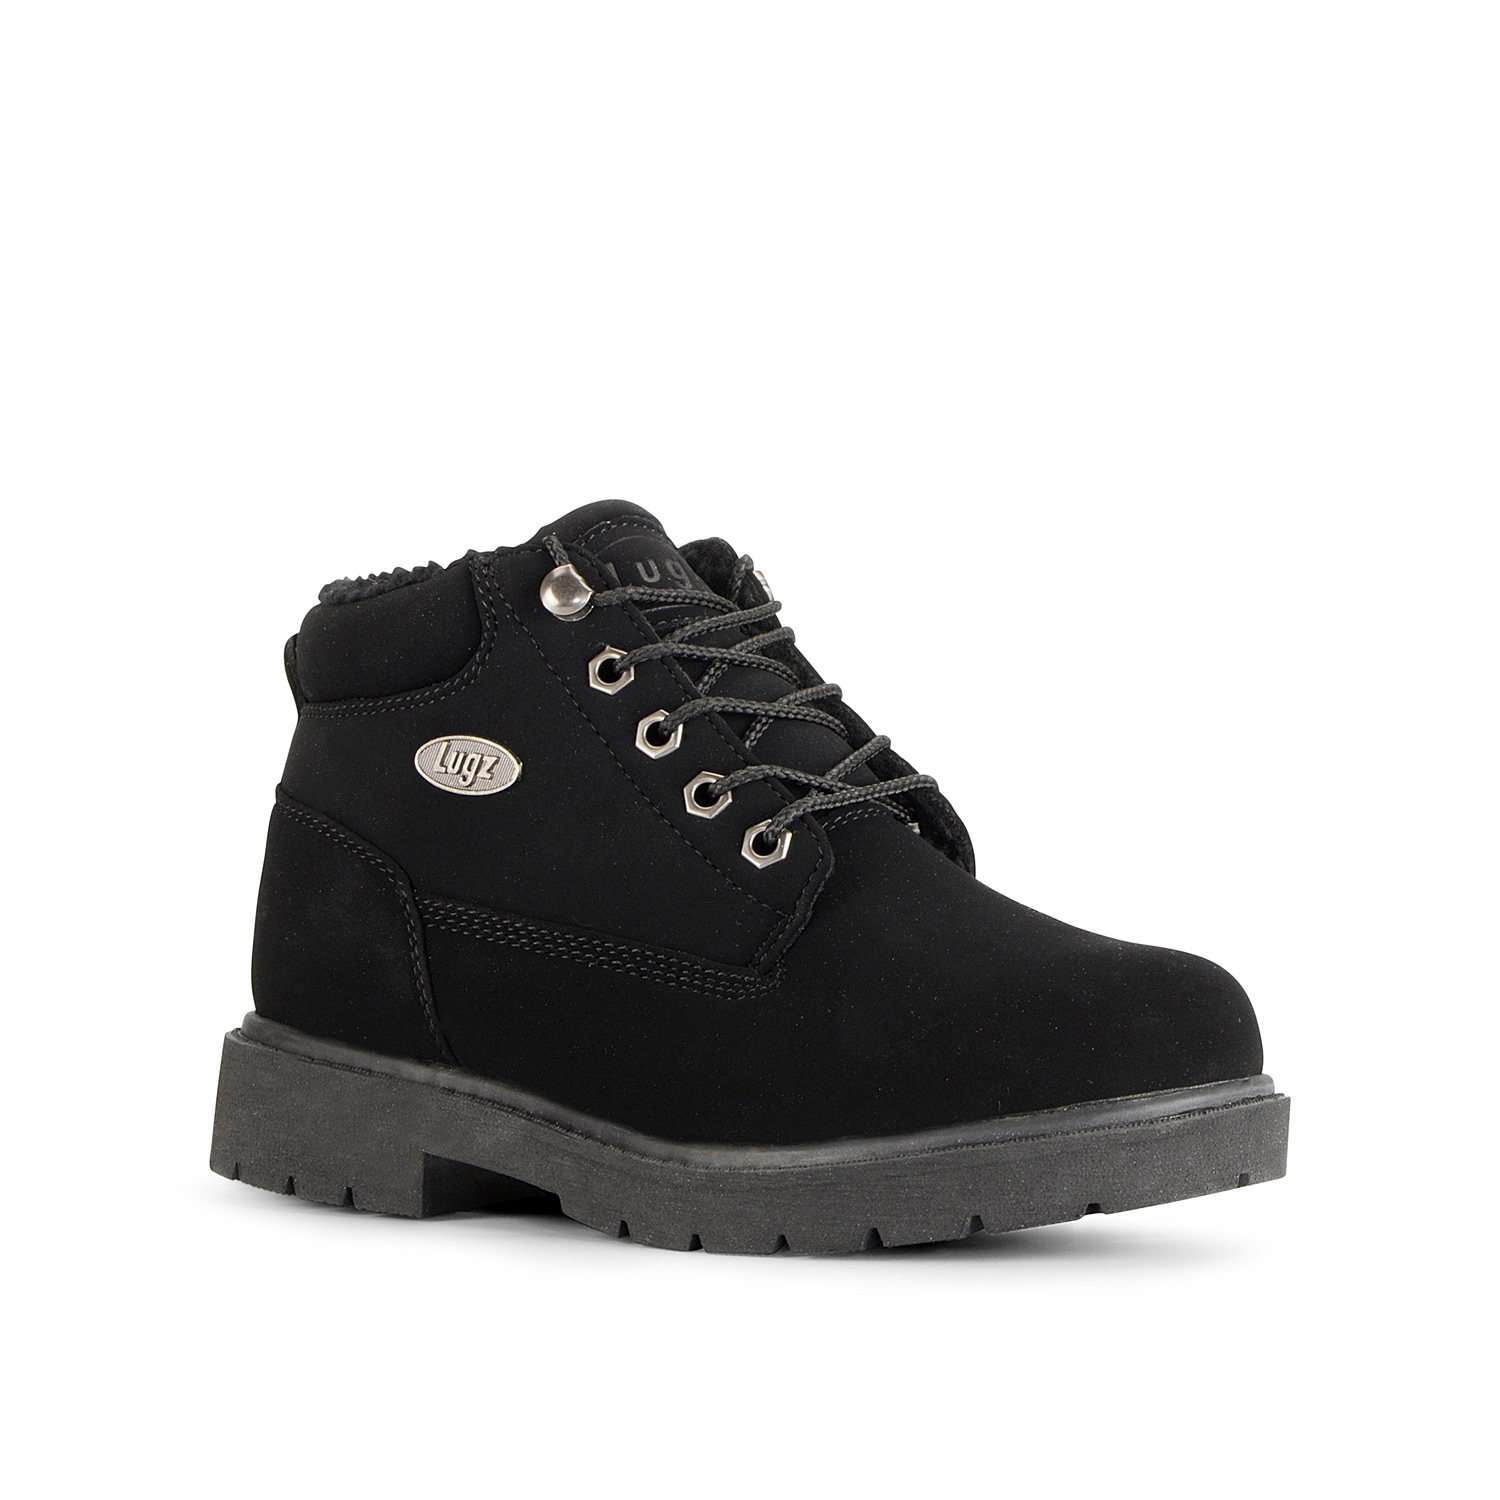 Designed for utmost comfort, the water-resistant Drifter Fleece LX Work Boot by Lugz is a must-have for cold weather conditions. Cozy fleece lining keeps your feet warm, while flexastride molded memory foam insole and lugged outsole offers all day comfortable wear.